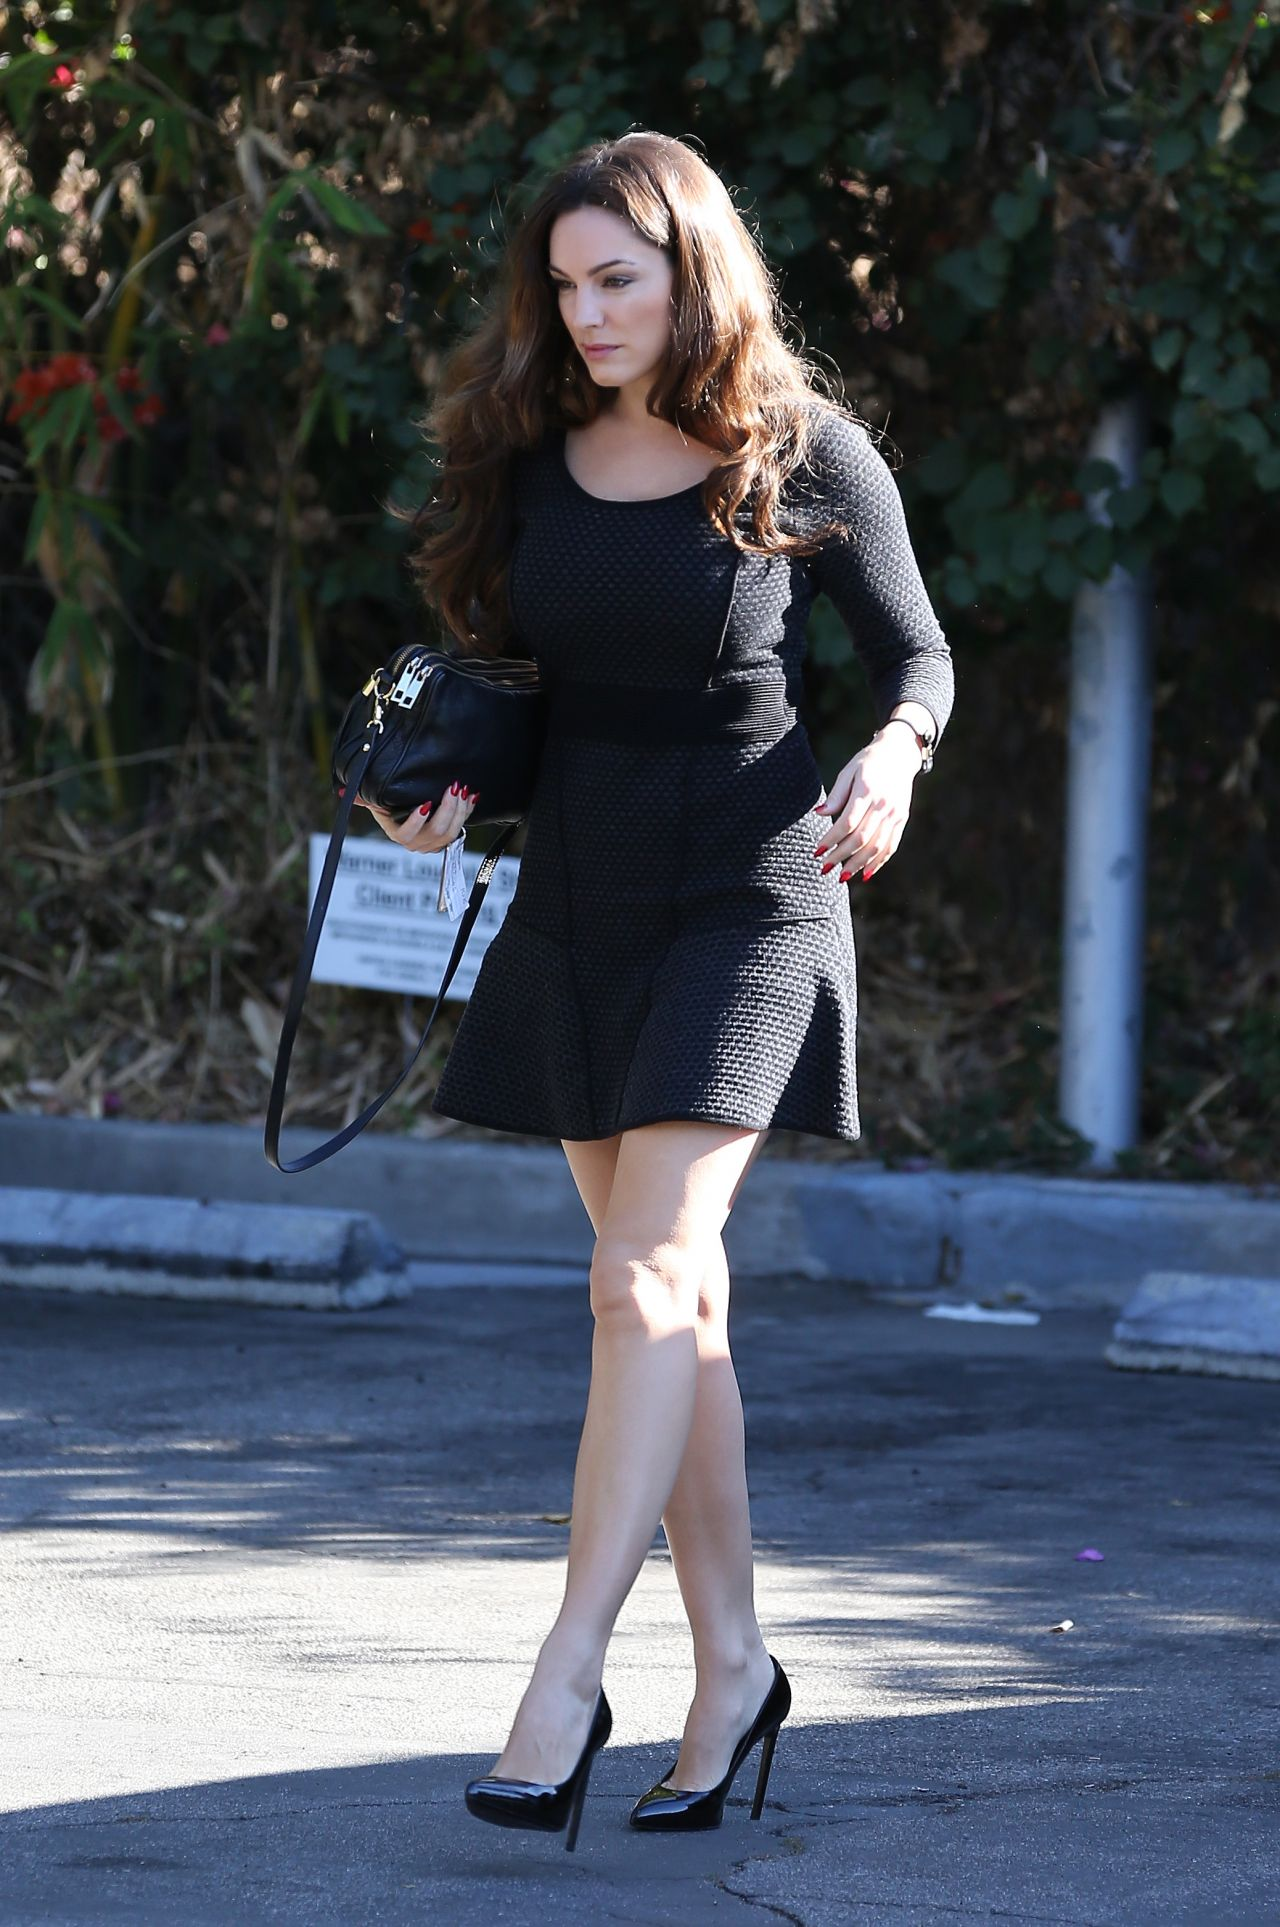 Kelly Brook in a Short Skirt